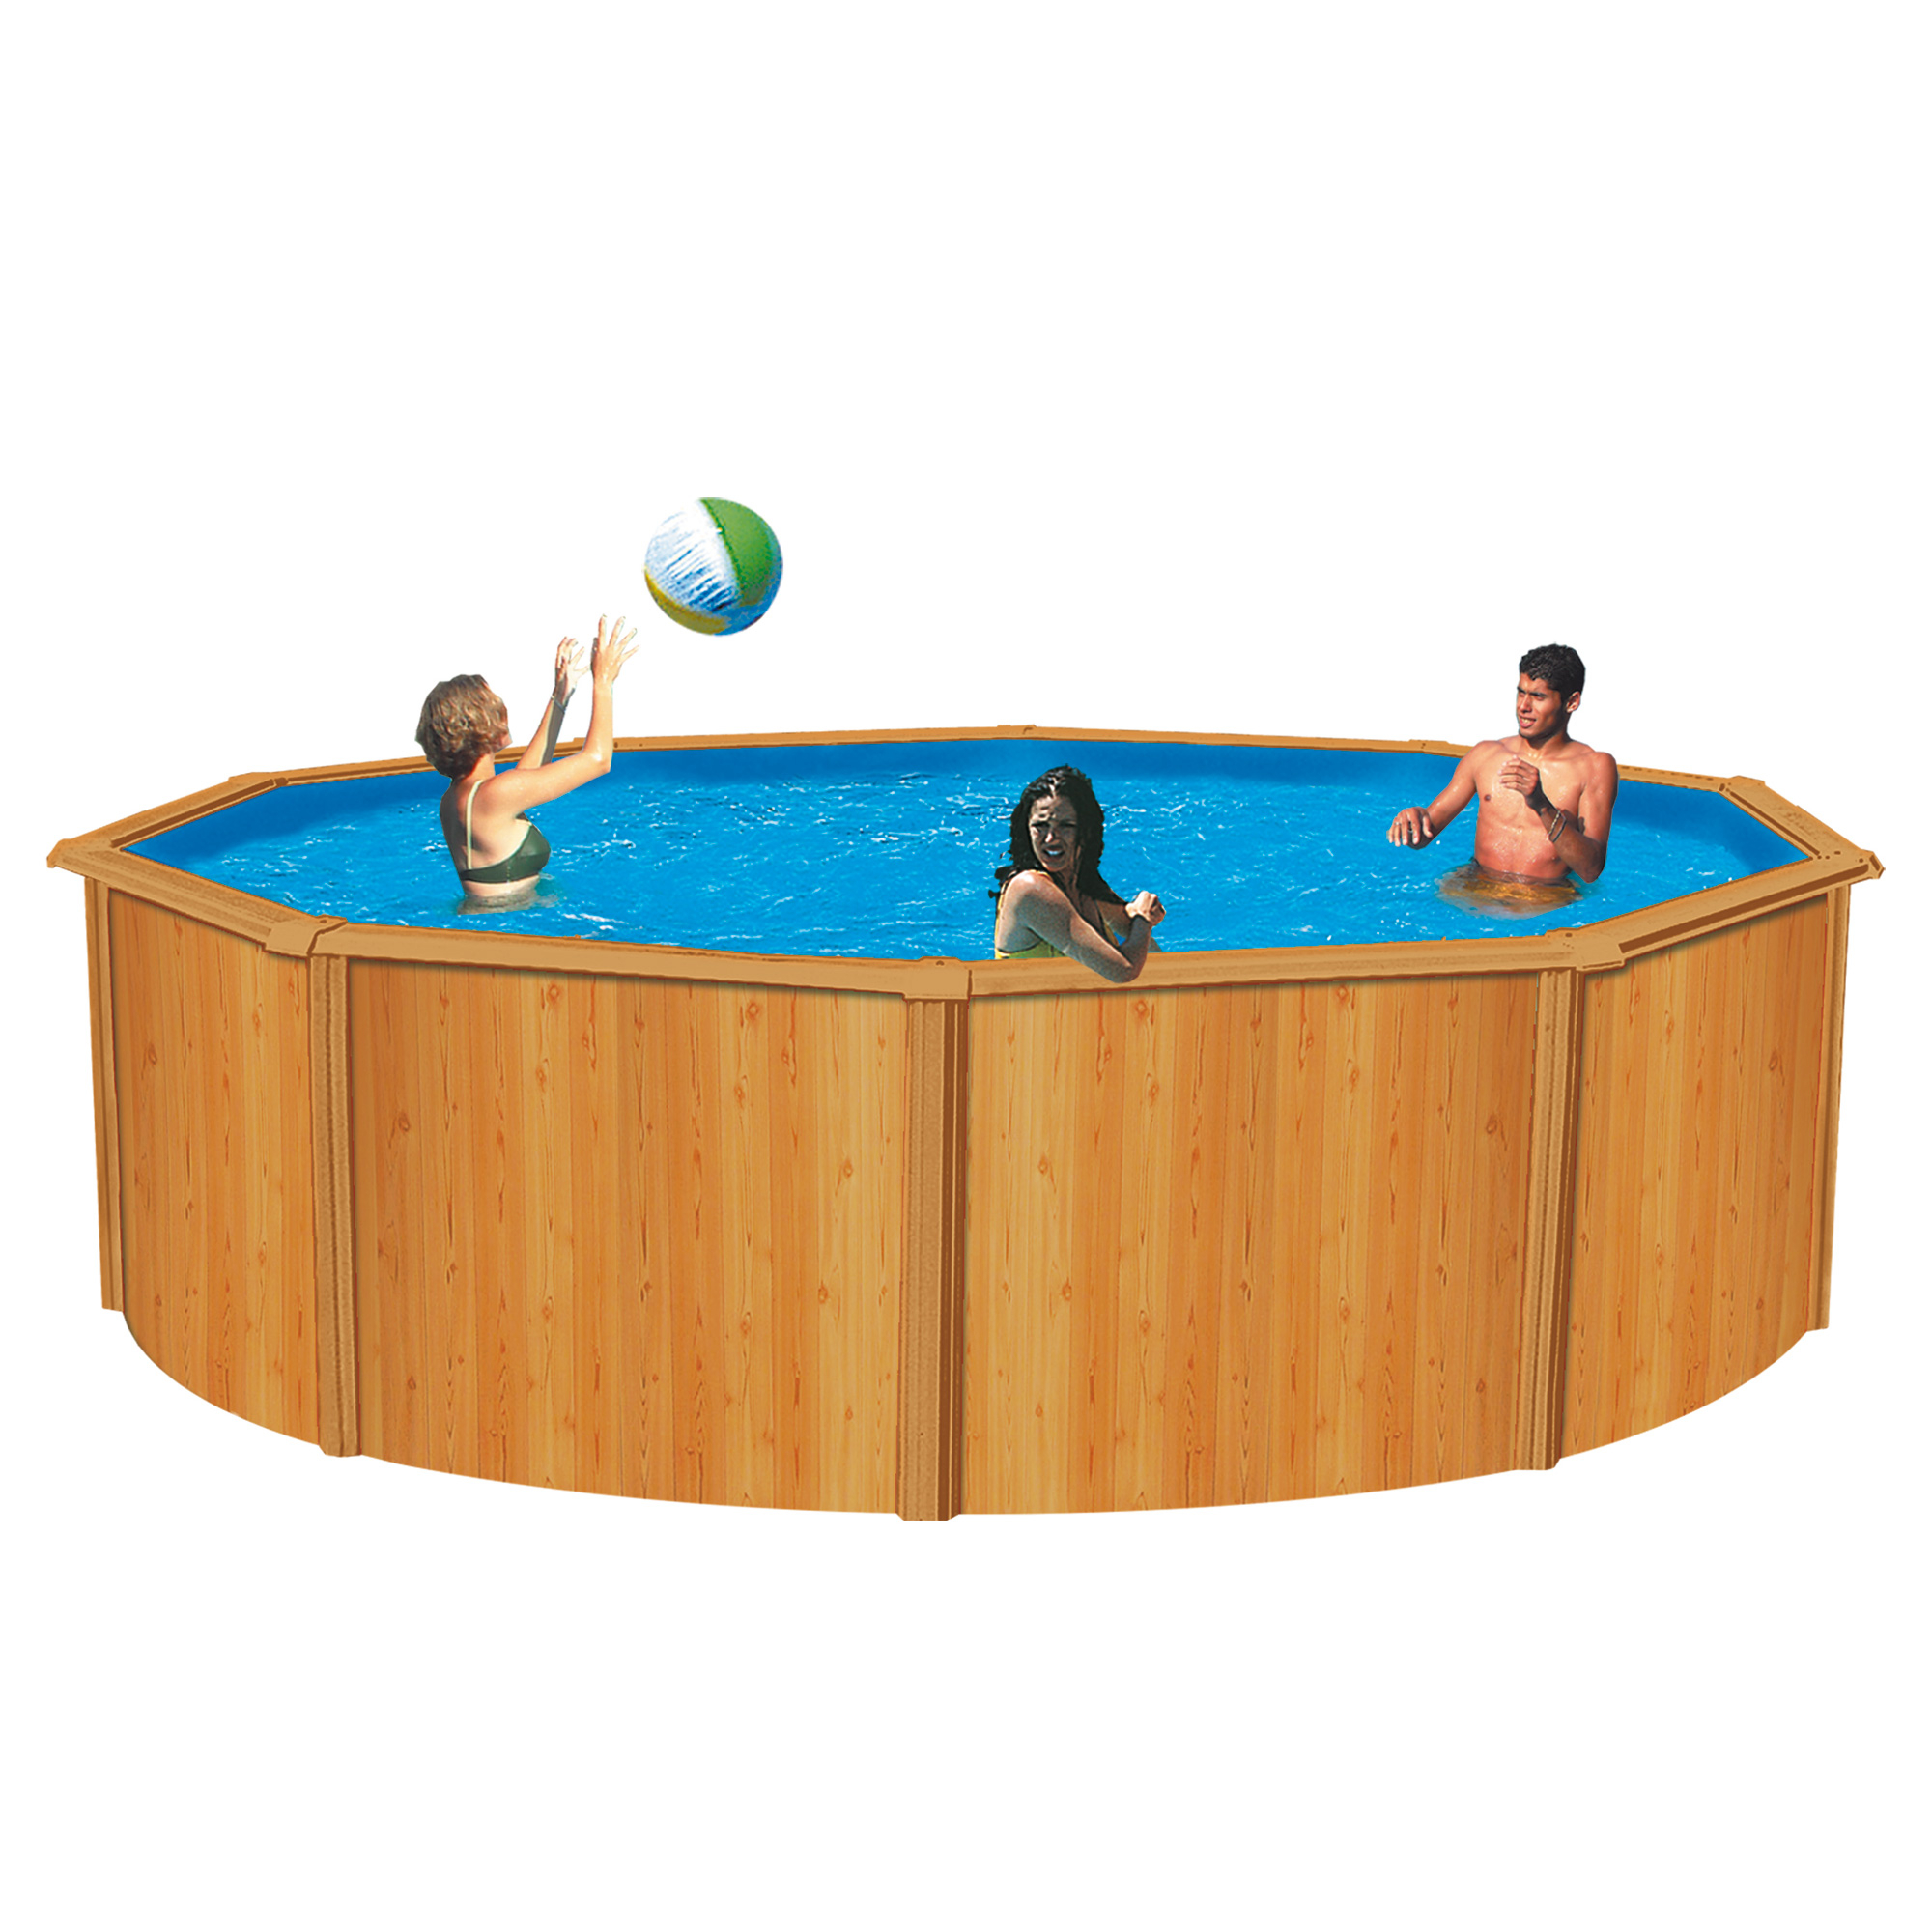 Trigano piscine canyon aspect bois for Comparateur de prix piscine bois